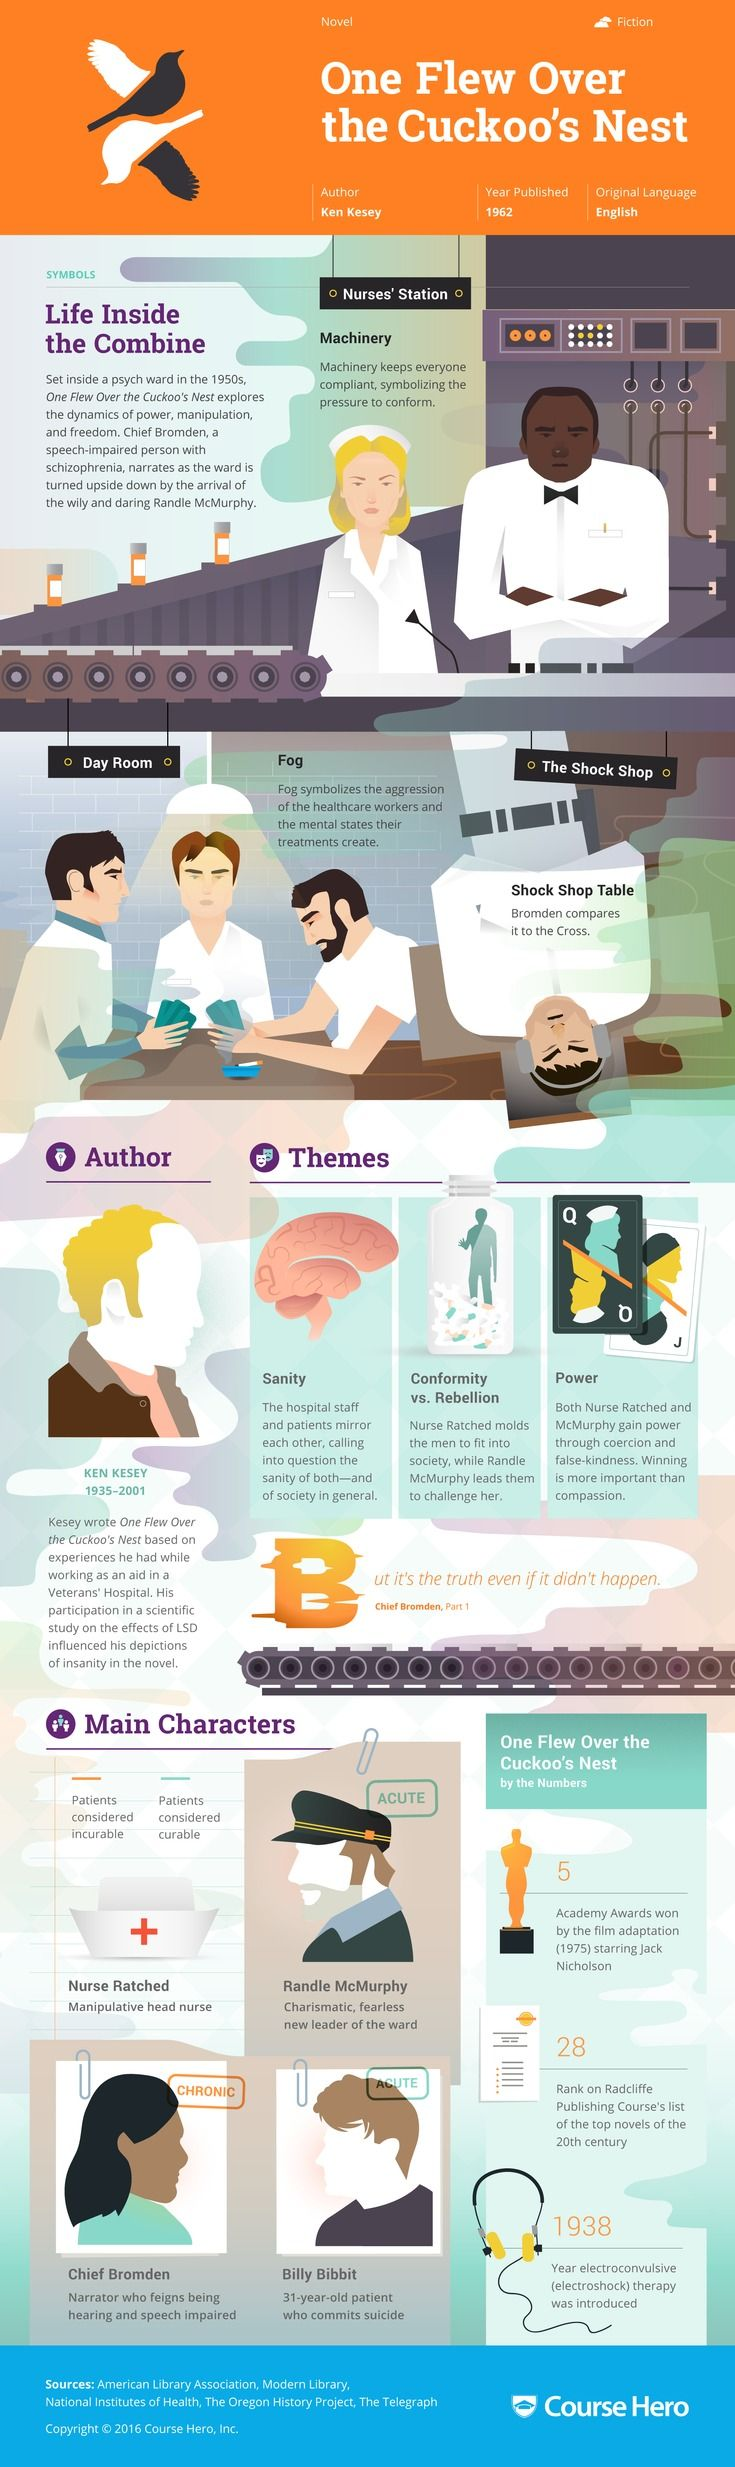 best ideas about sociology books penguin books this one flew over the cuckoo s nest infographic from course hero is as awesome